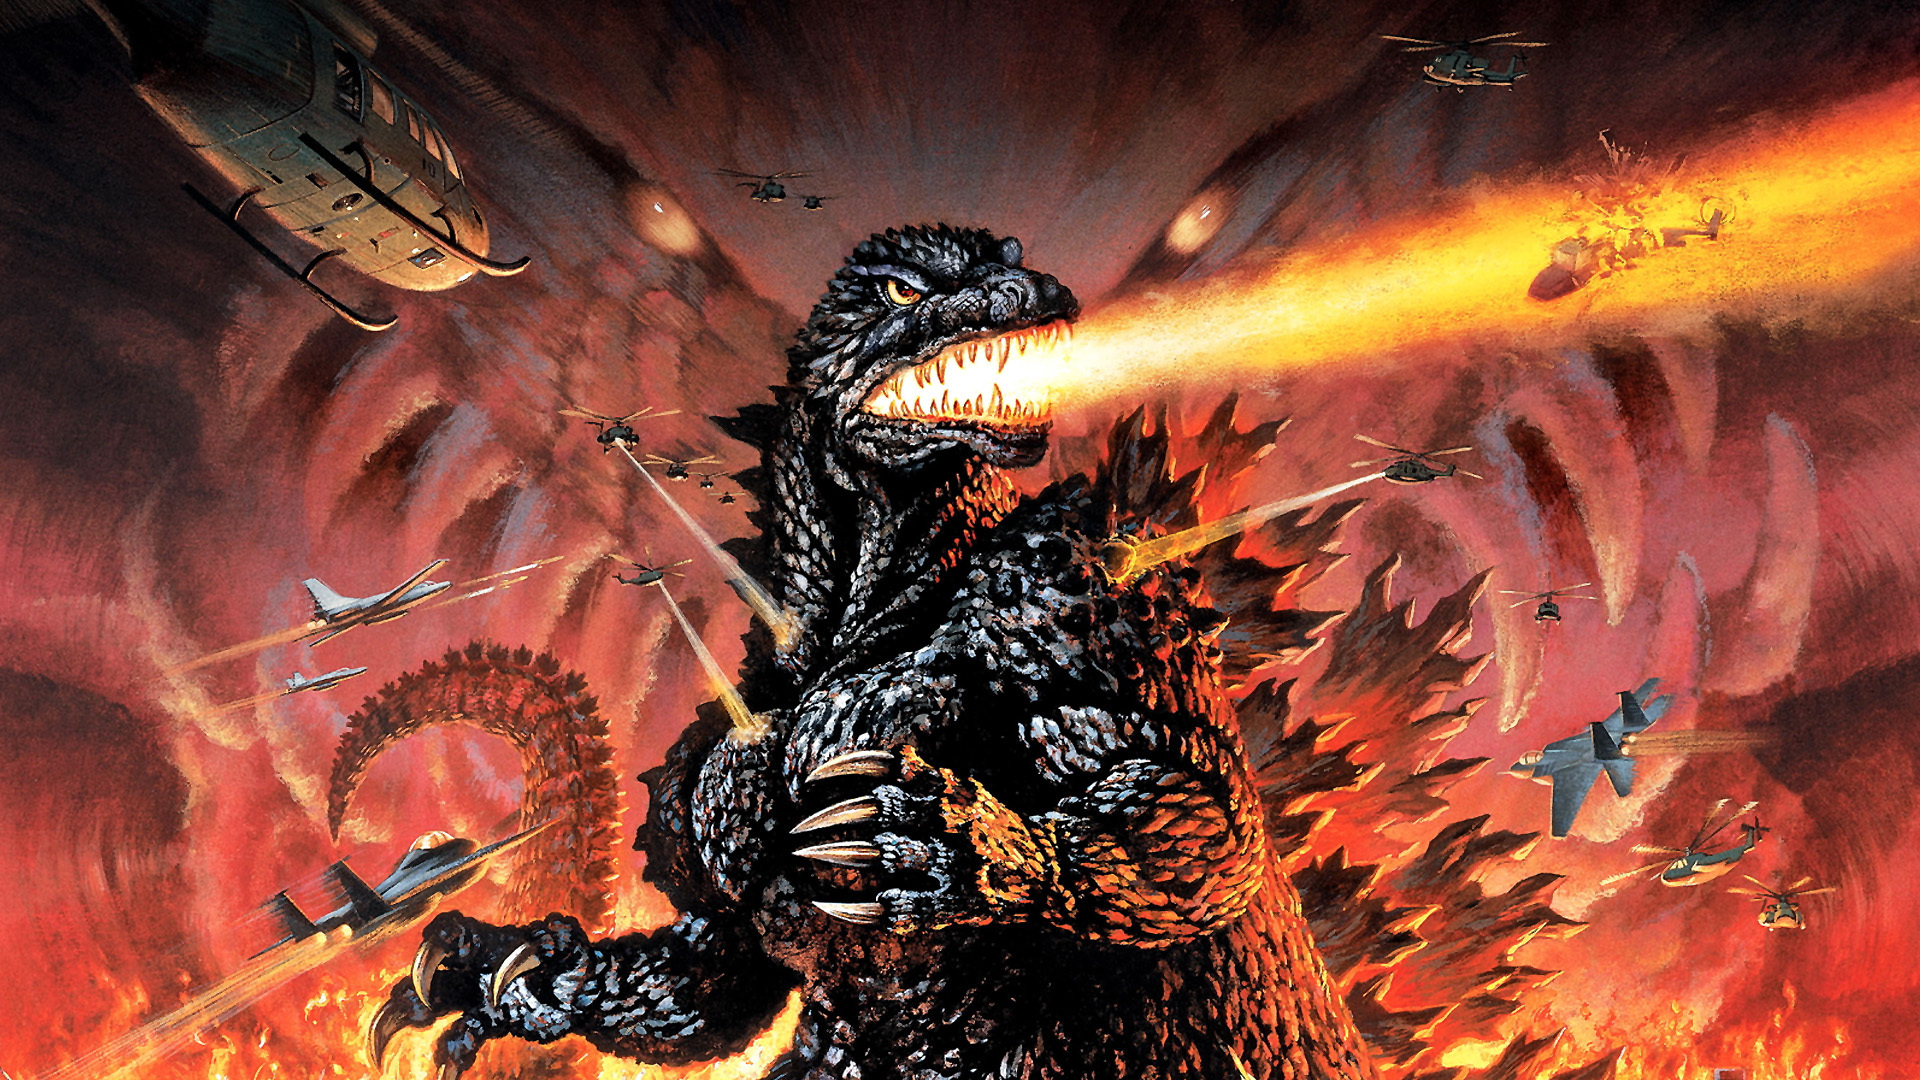 Godzilla Bilder Godzilla Destruction Hintergrund Hd Hintergrund And